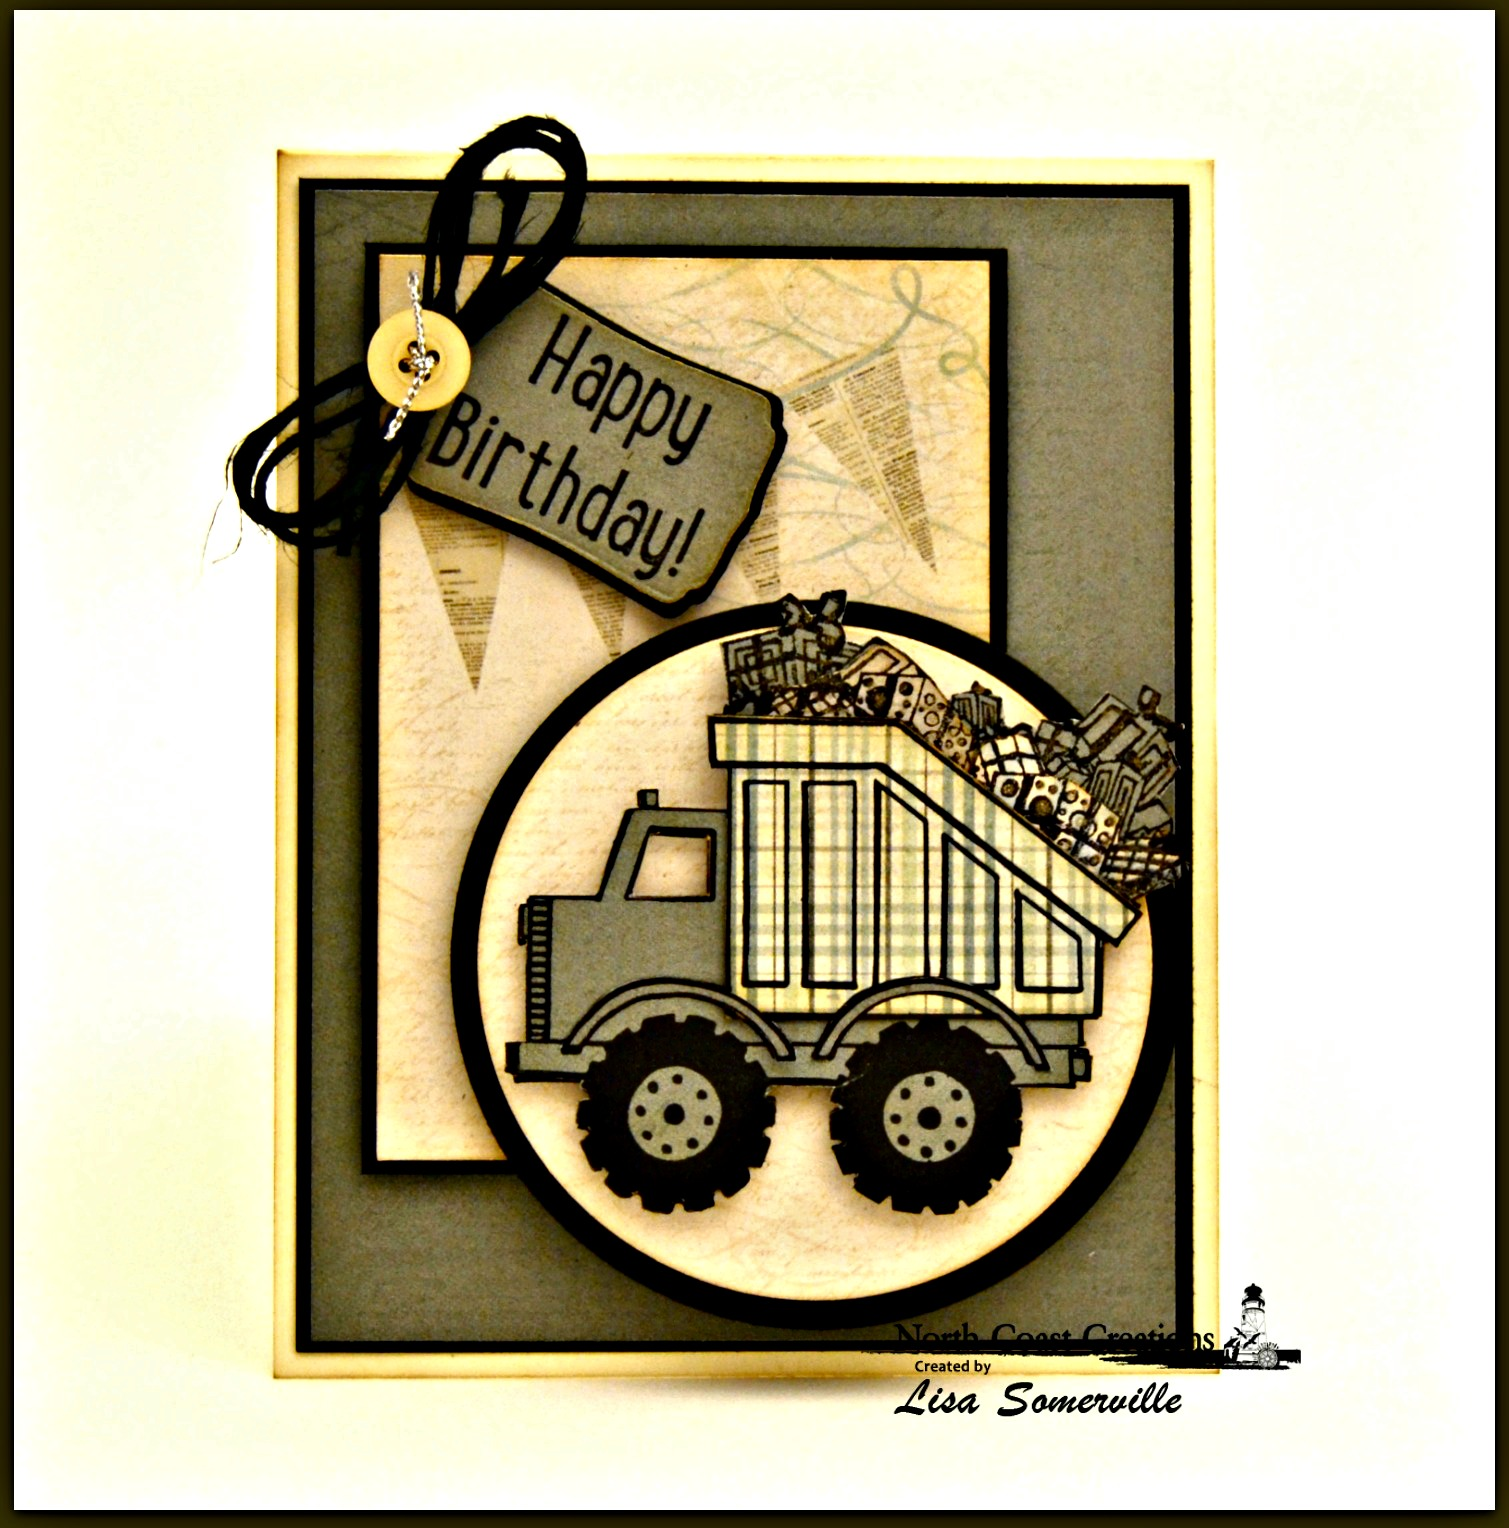 Stamps - North Coast Creations Dump Truck Birthday, Santa's Sleigh, Our Daily Bread Designs Custom Mini Tags Dies, ODBD Custom Circle Ornaments Dies, ODBD Custom Matting Circles Dies